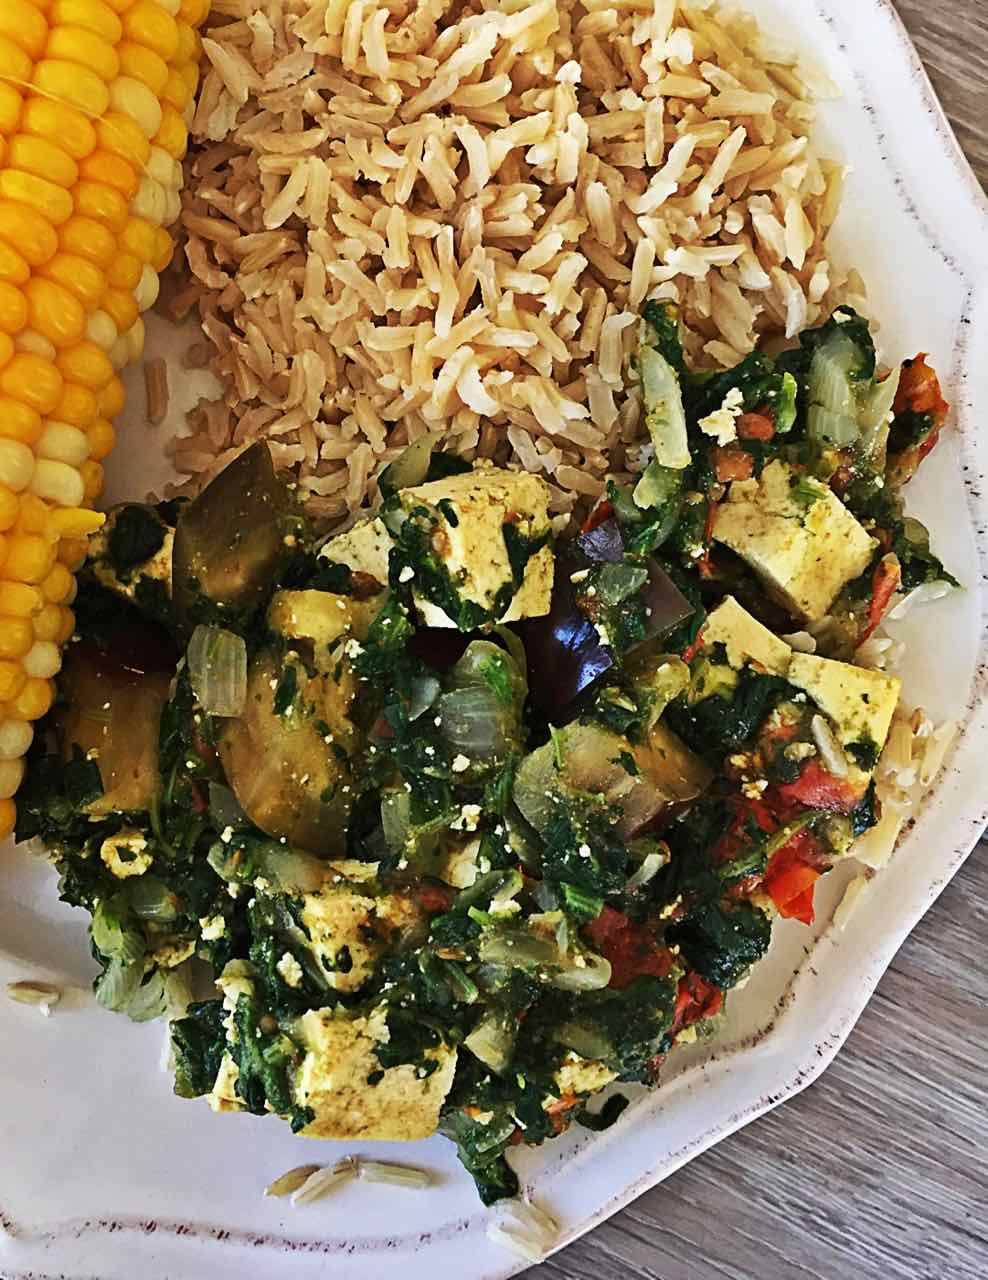 Image of Vegan Indian Palak Paneer with tofu and eggplant on plate with basmati rice and corn on the cob.